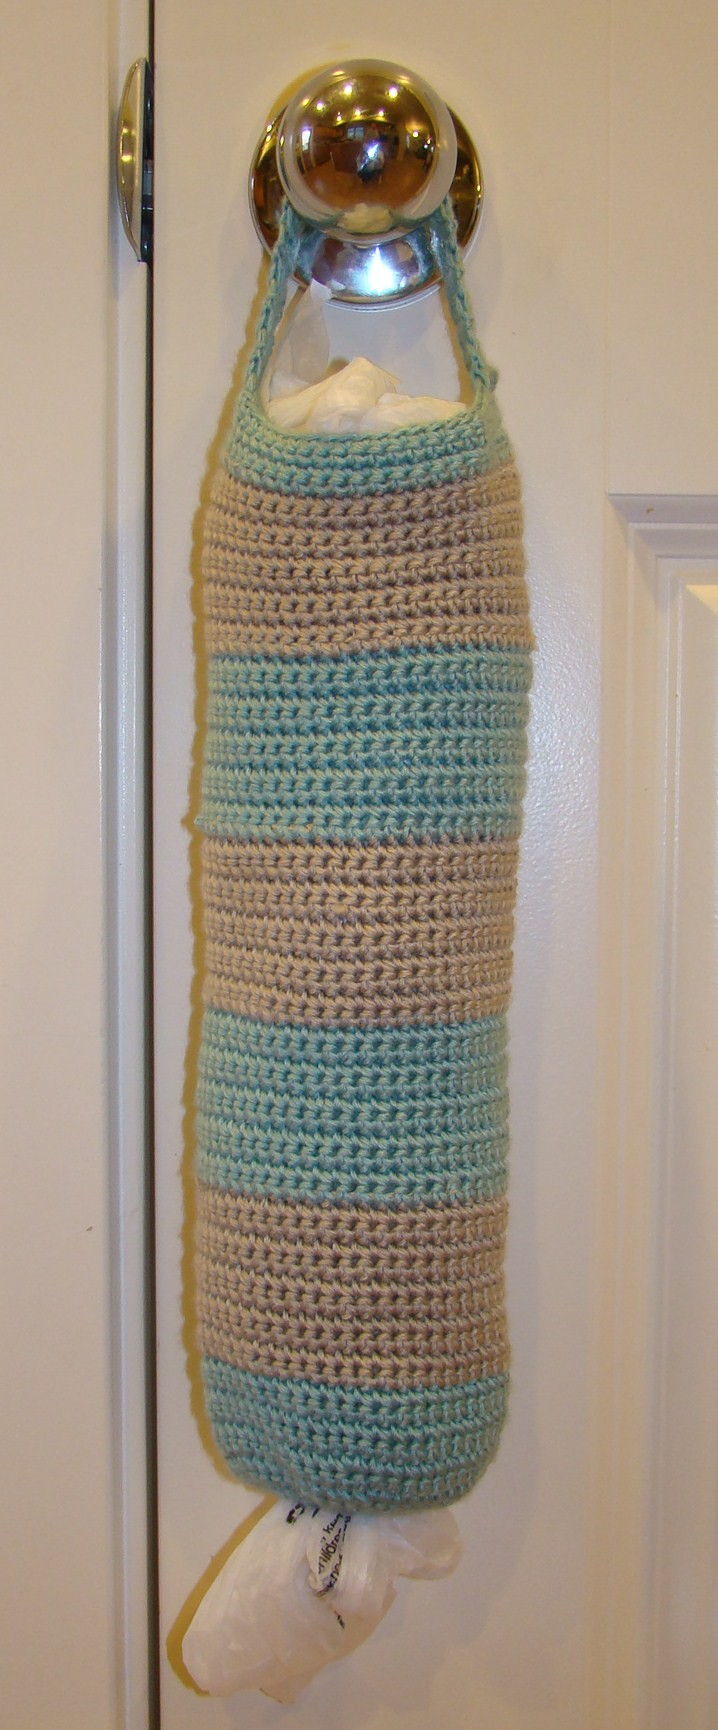 Plastic Bags Mess Make Your Own Crochet Bag Holder Knit And Crochet Daily